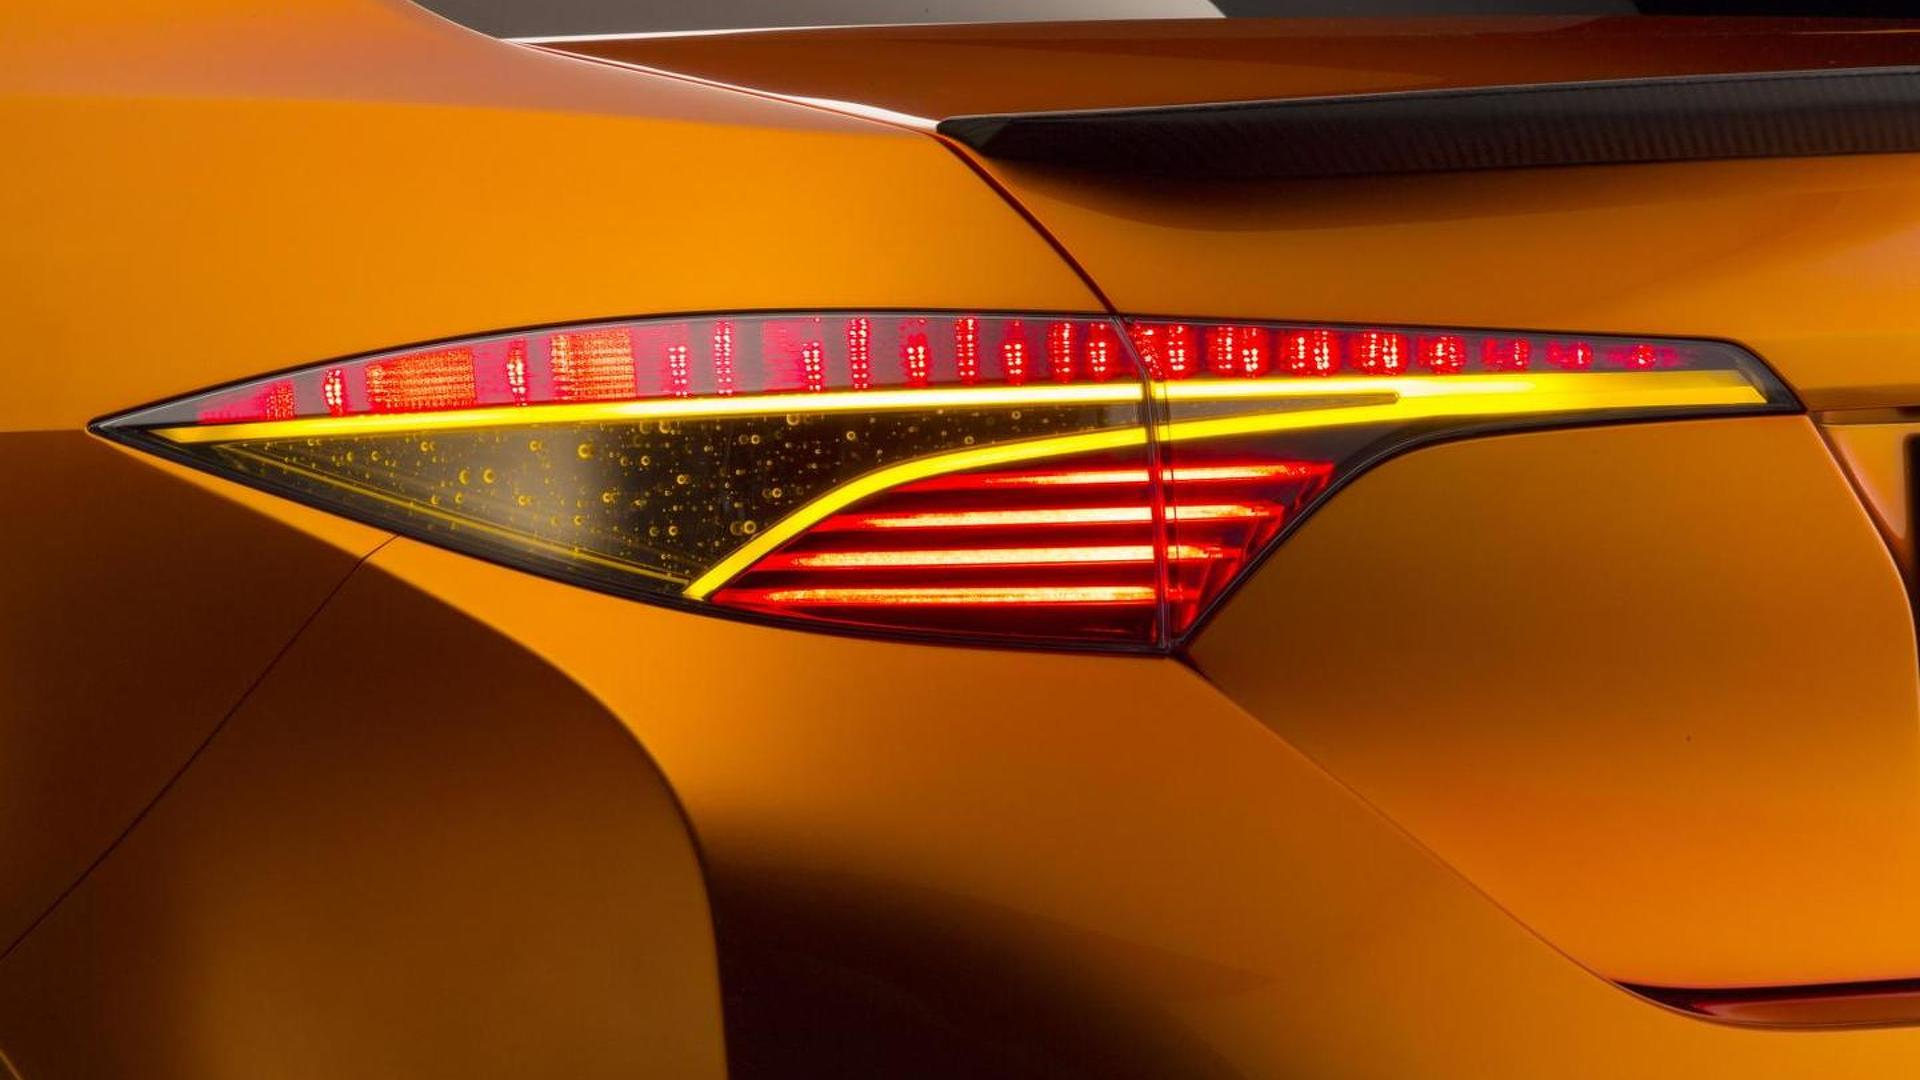 Toyota Corolla Furia concept officially revealed at NAIAS [videos]